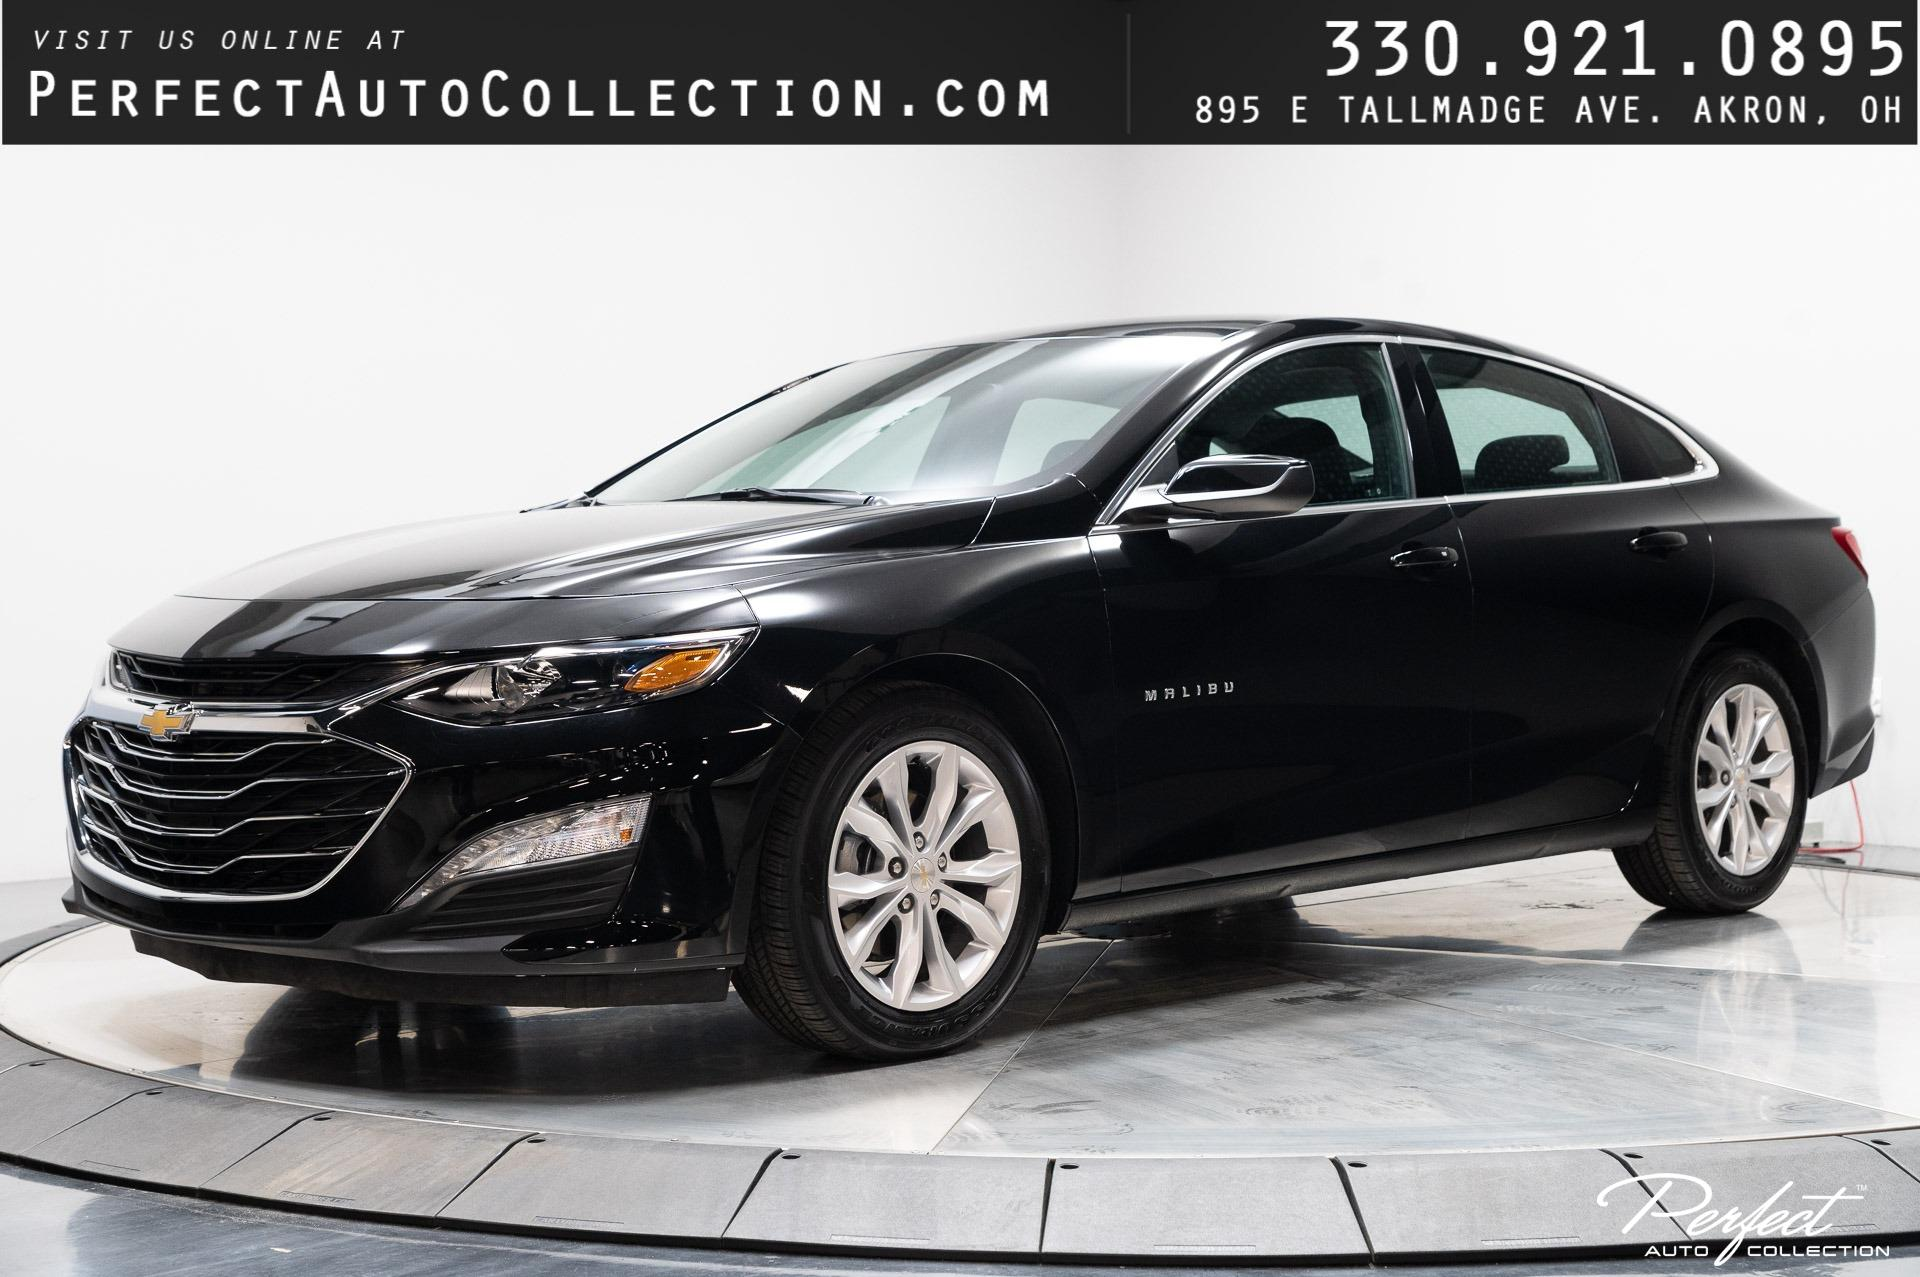 Used 2020 Chevrolet Malibu LT for sale $17,495 at Perfect Auto Collection in Akron OH 44310 1